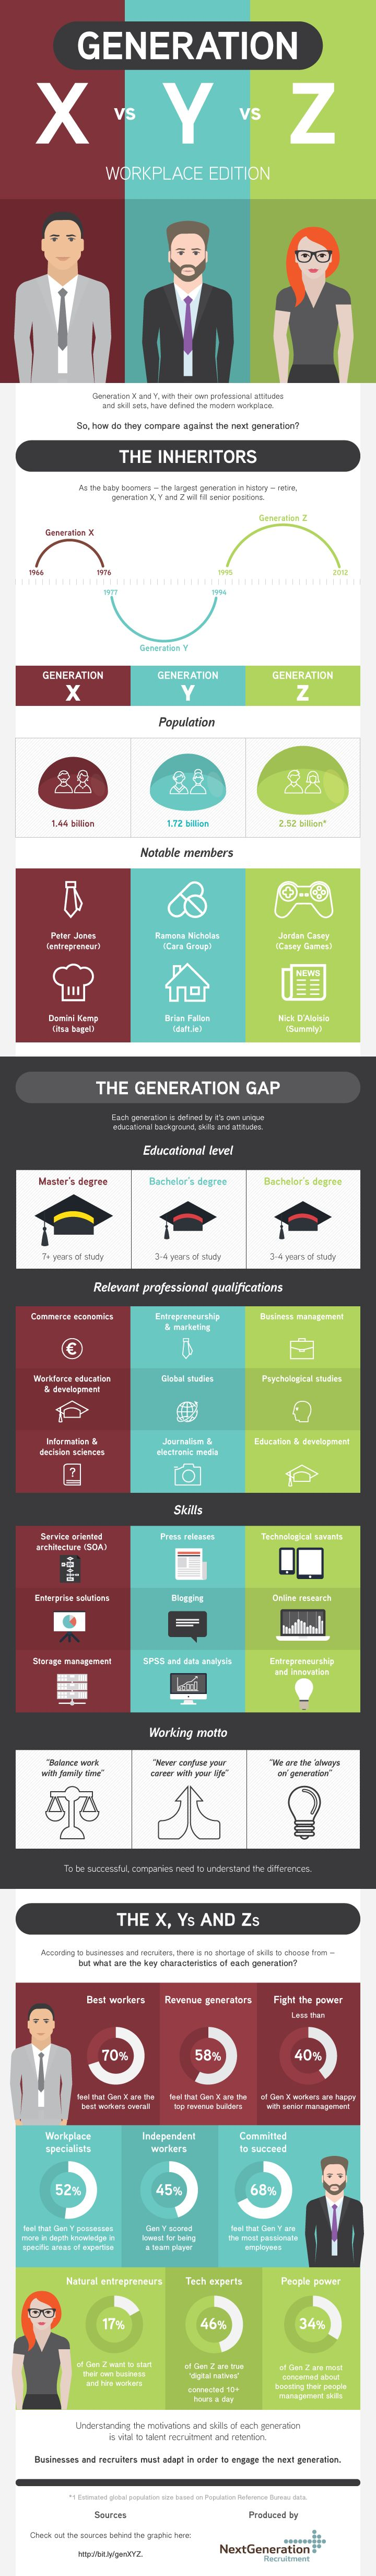 Generation X vs Y vs Z: Workplace Edition #Infographic